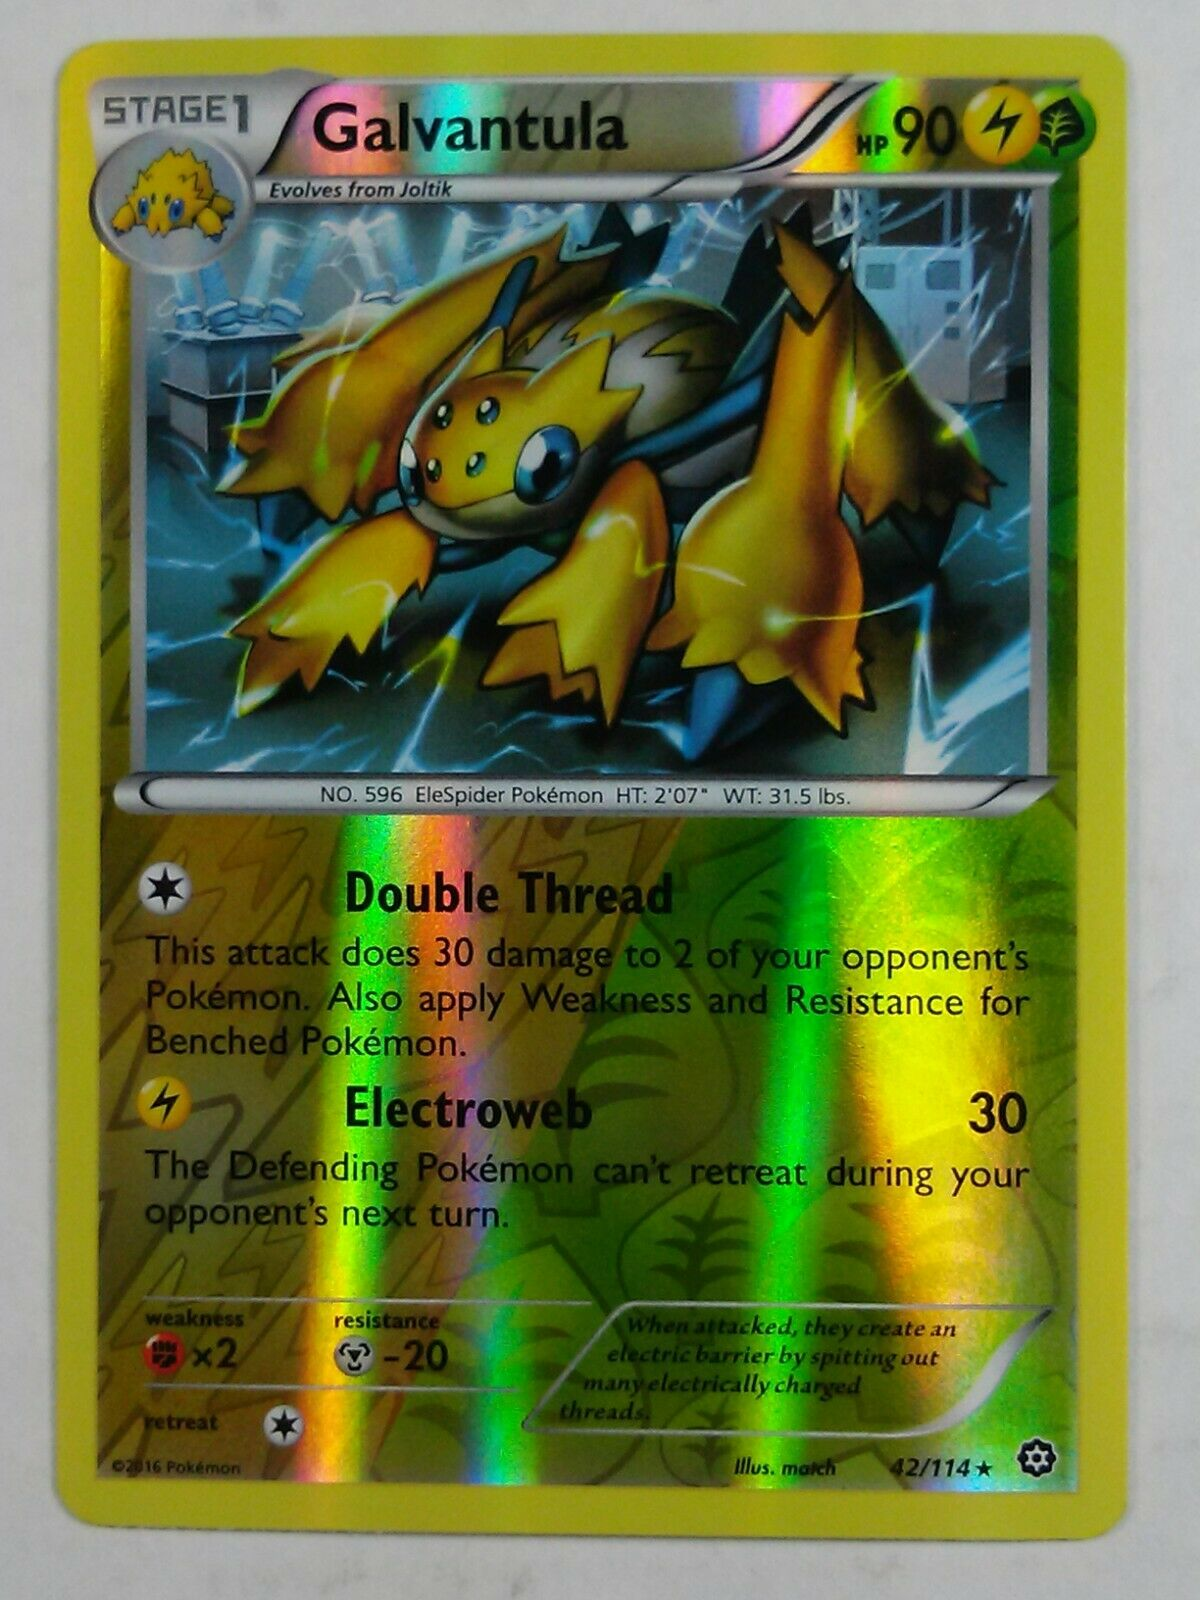 Galvantula 42//114 Steam Siege Rare Mint Pokemon Card